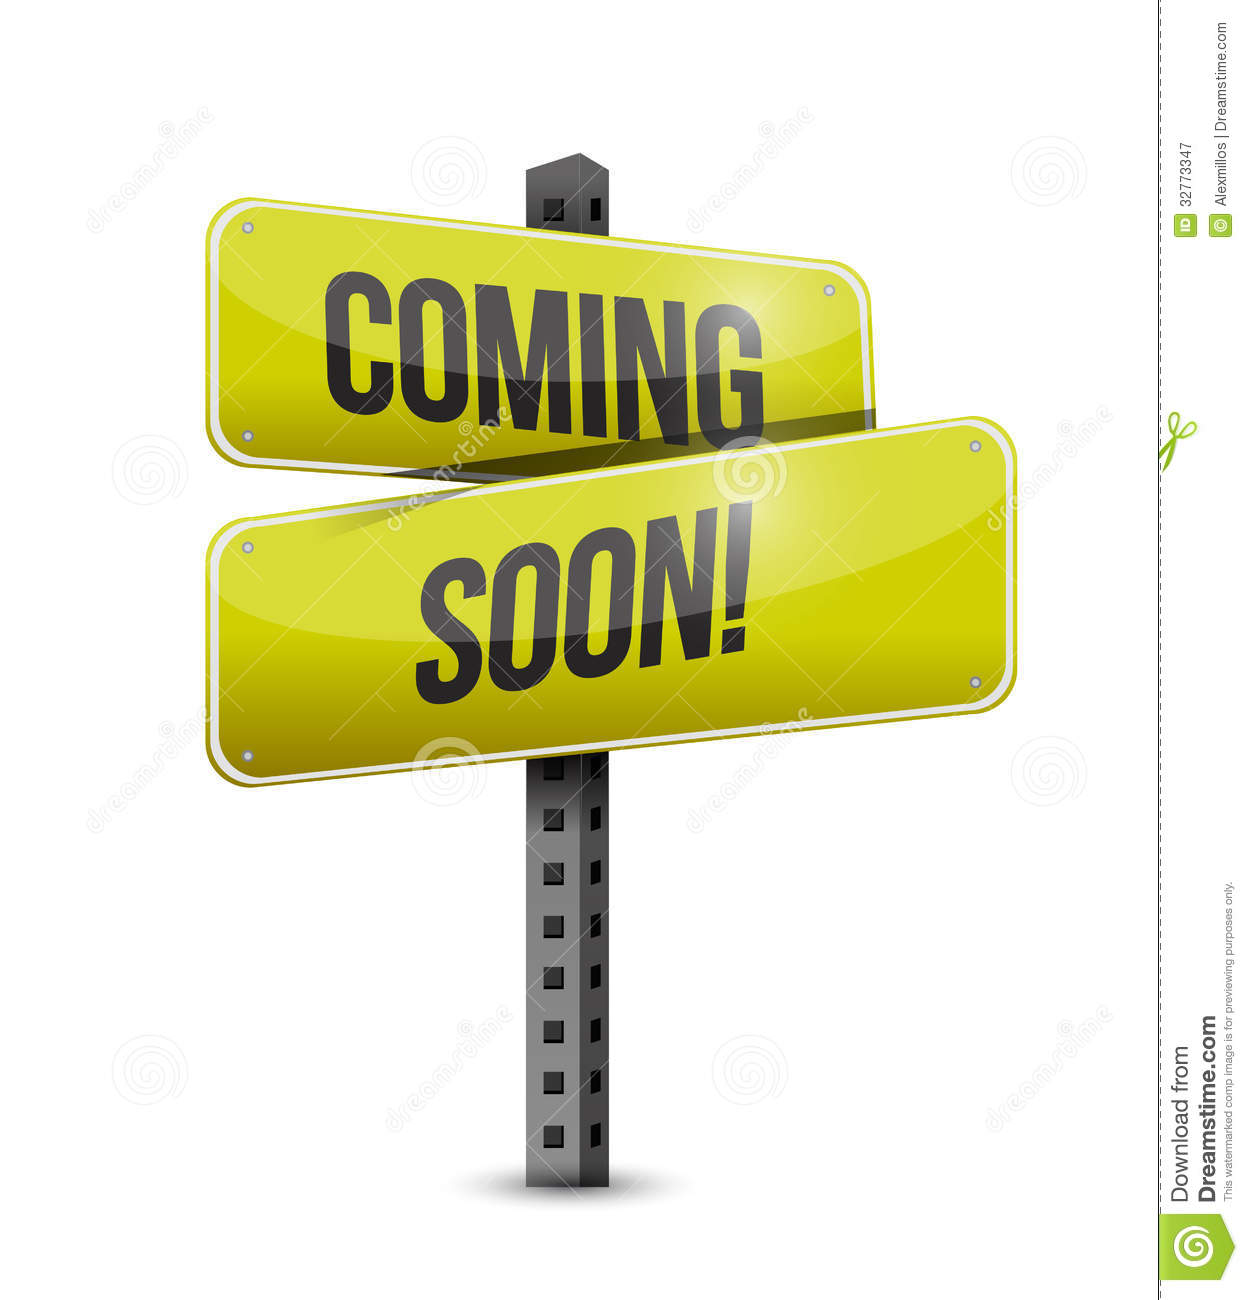 Coming Soon Road Sign Illustration Design Stock